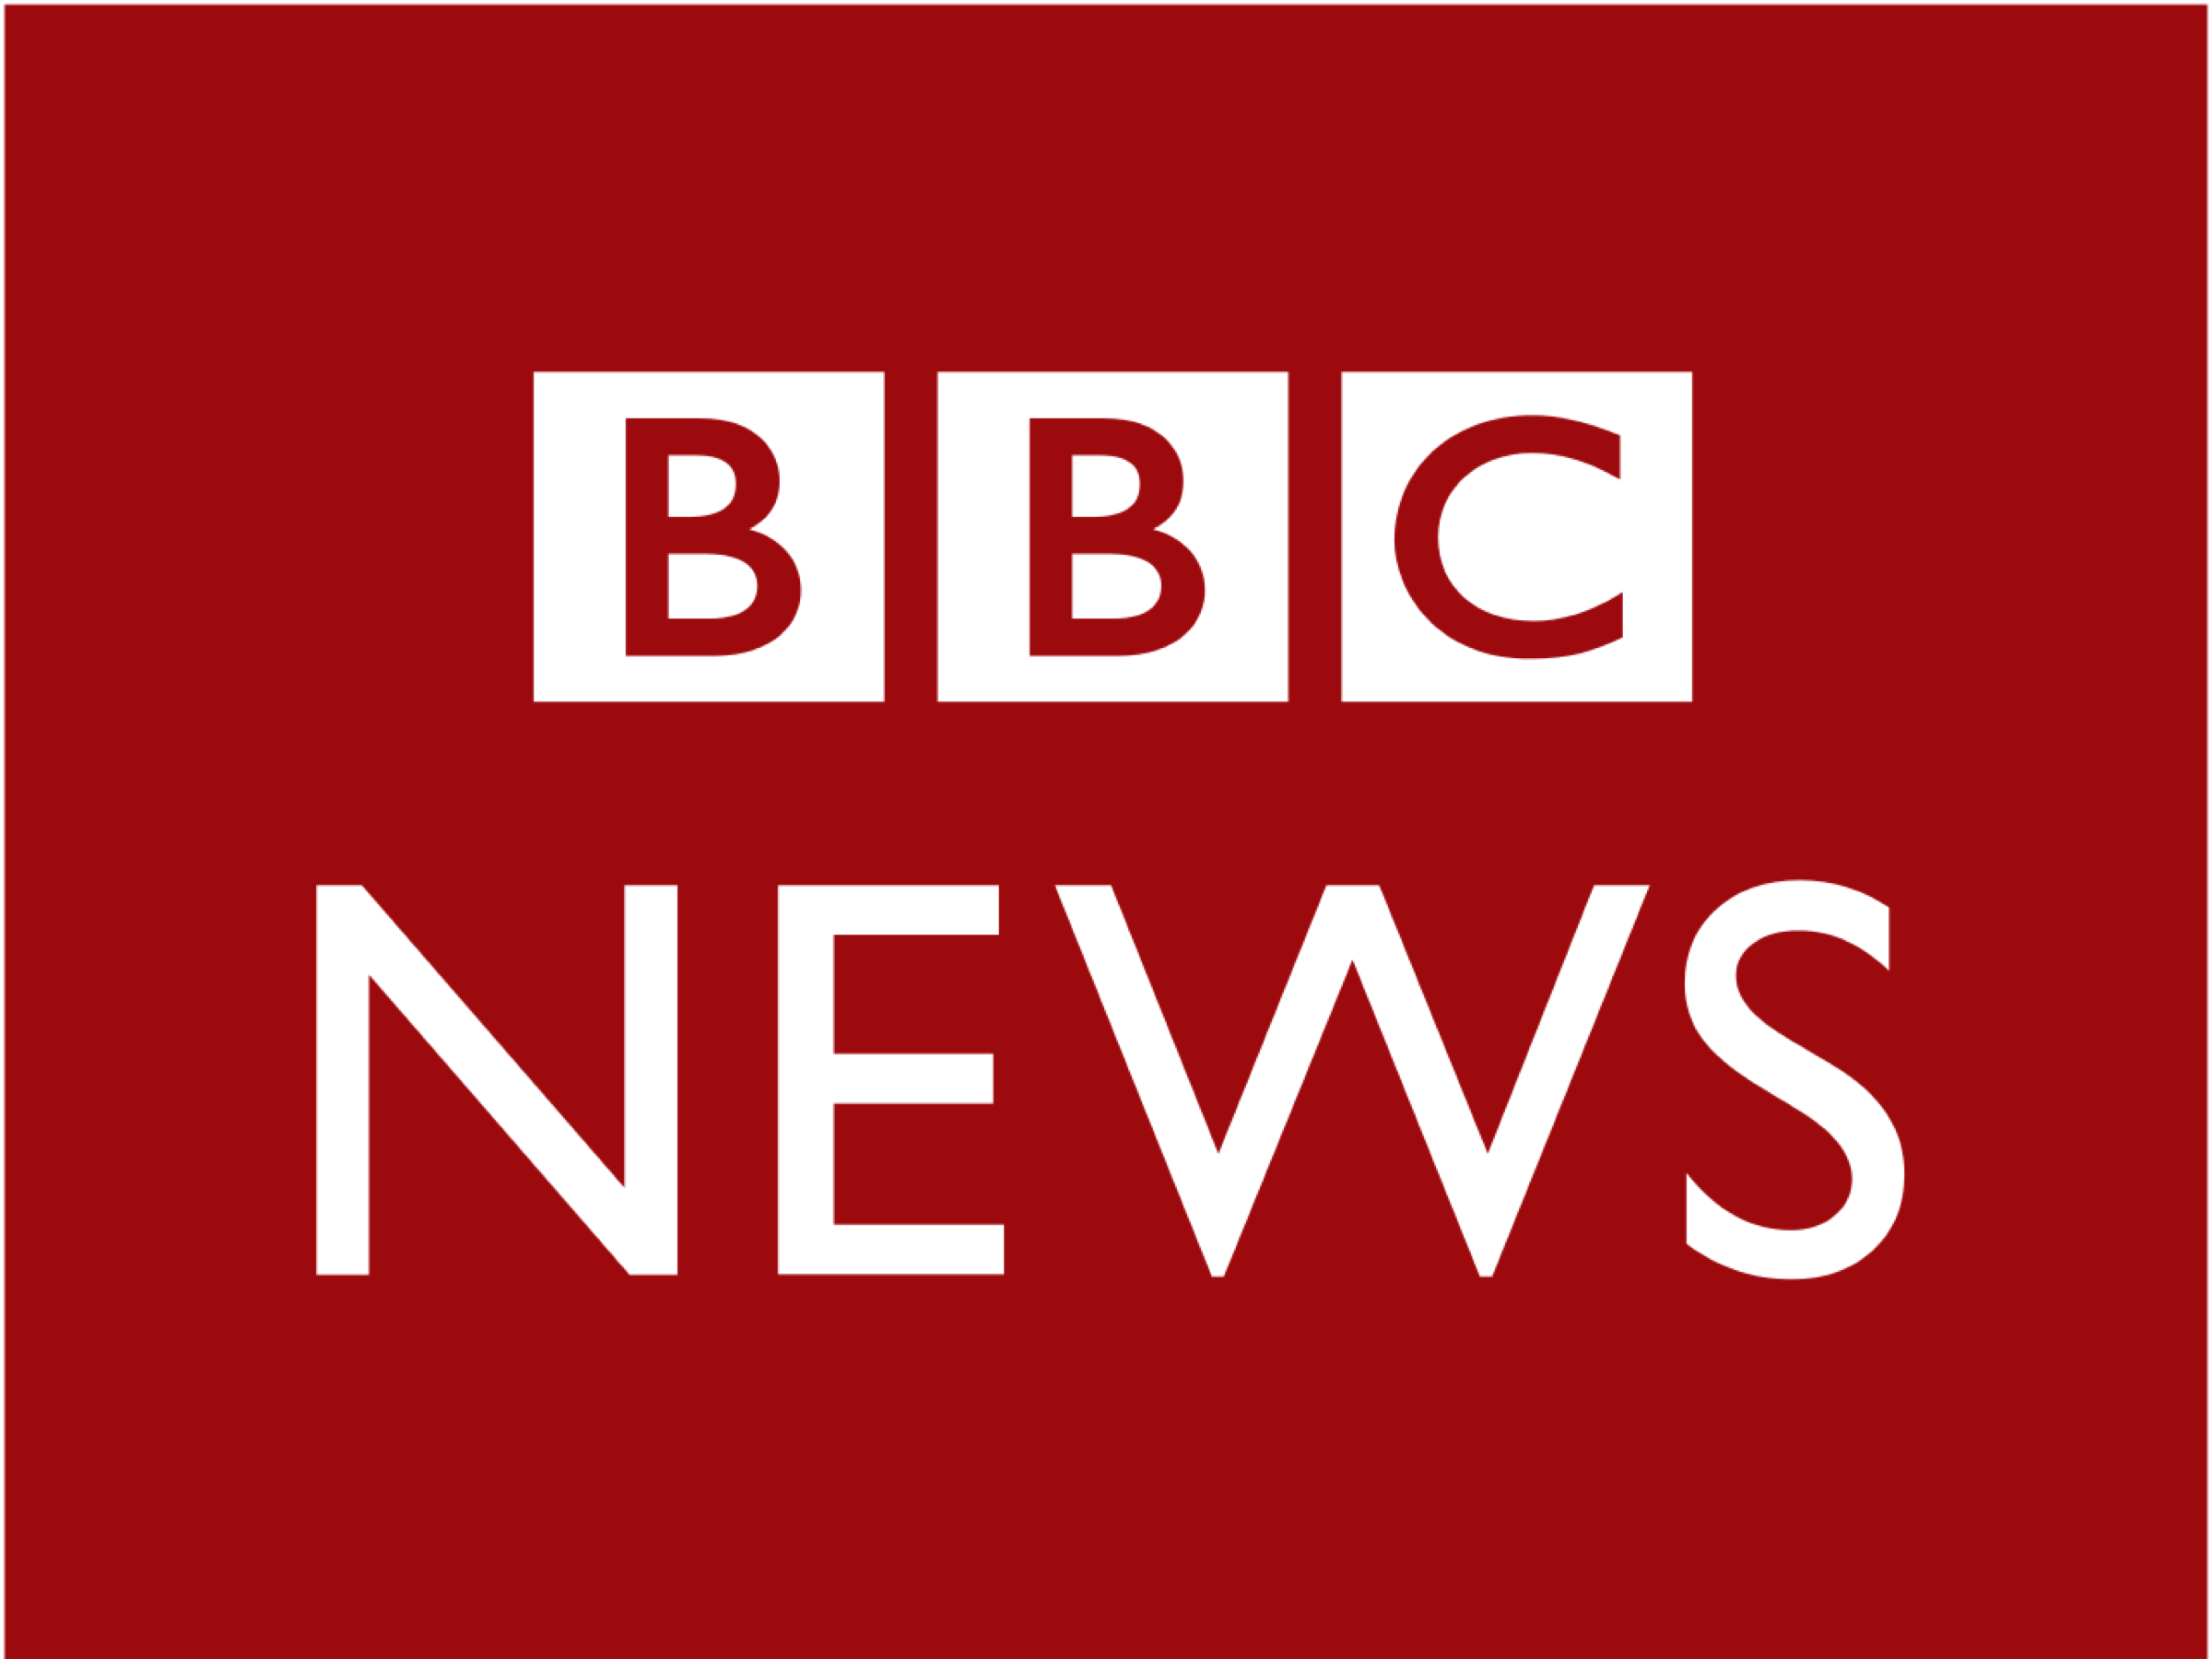 BBC News for Apple Watch brings breaking news notifications to your wrist